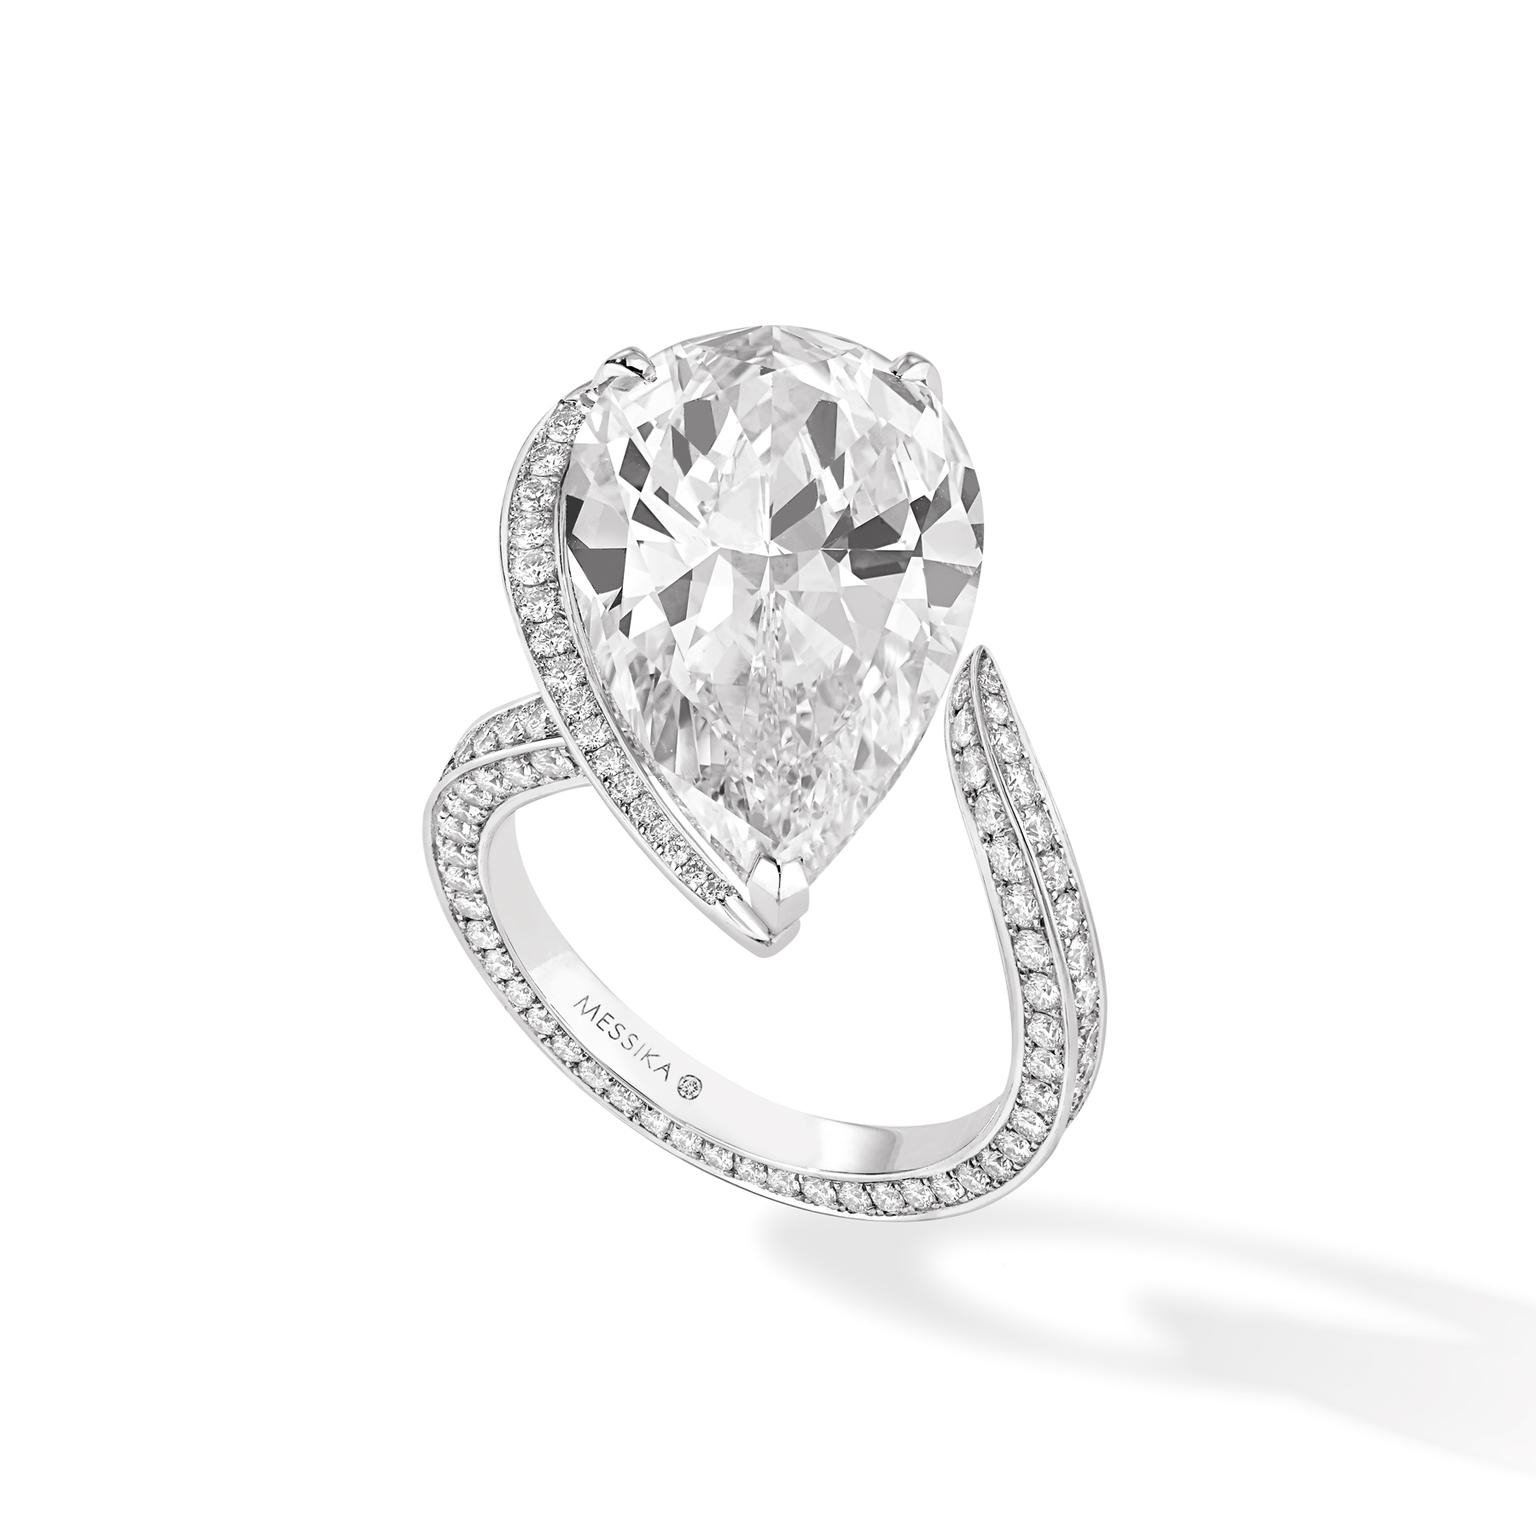 The Seven Engagement Ring Trends That Are Huge In 2017 | The With Regard To Best And Newest Diamond Hexagonal Frame Vintage Style Wedding Bands (View 5 of 15)